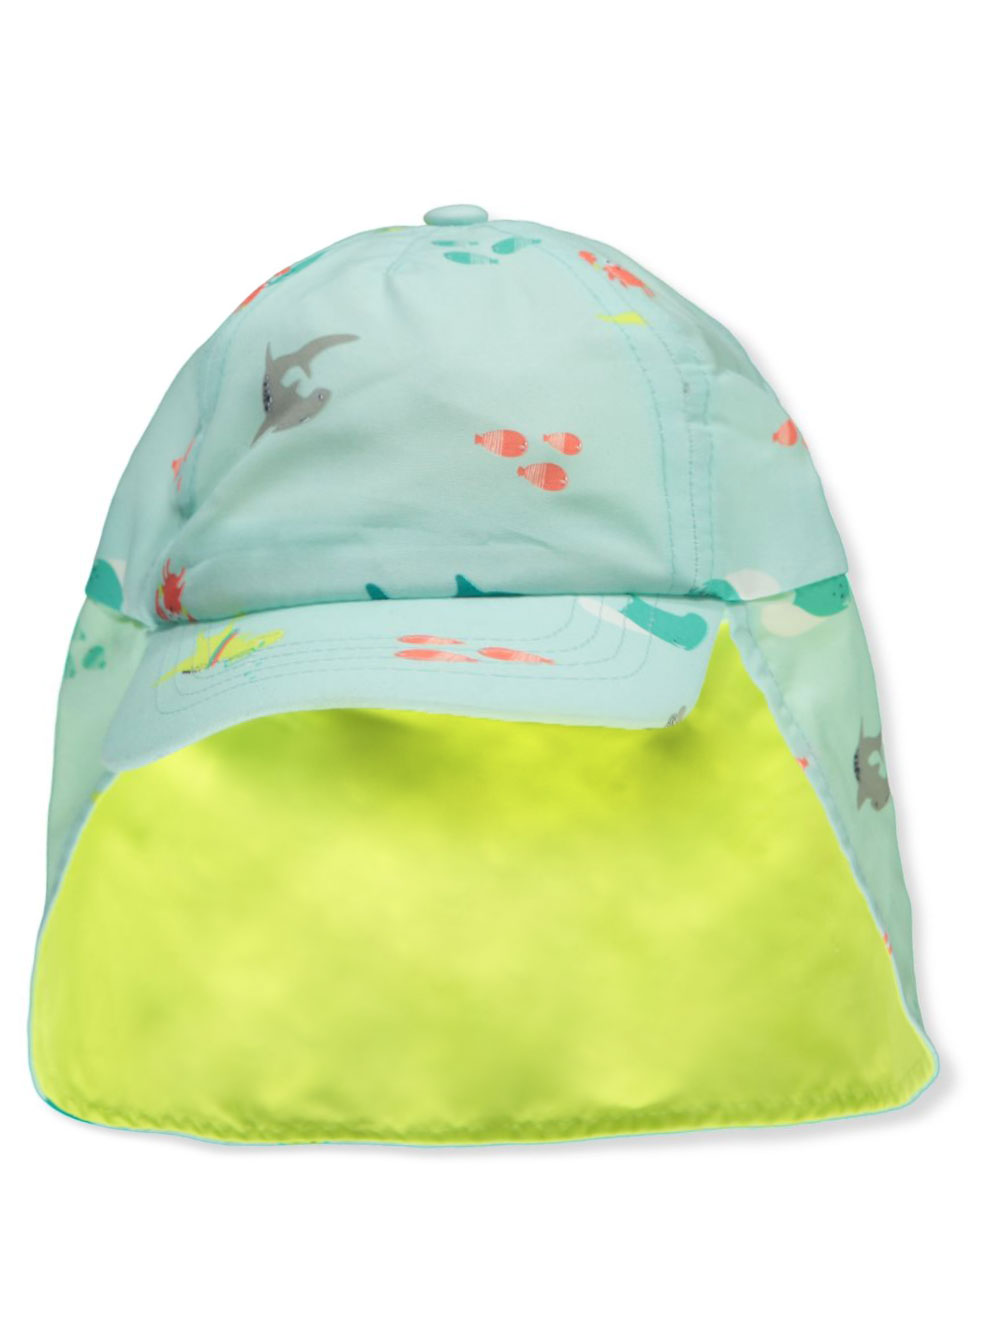 Boys Aqua Cold Weather Accessories